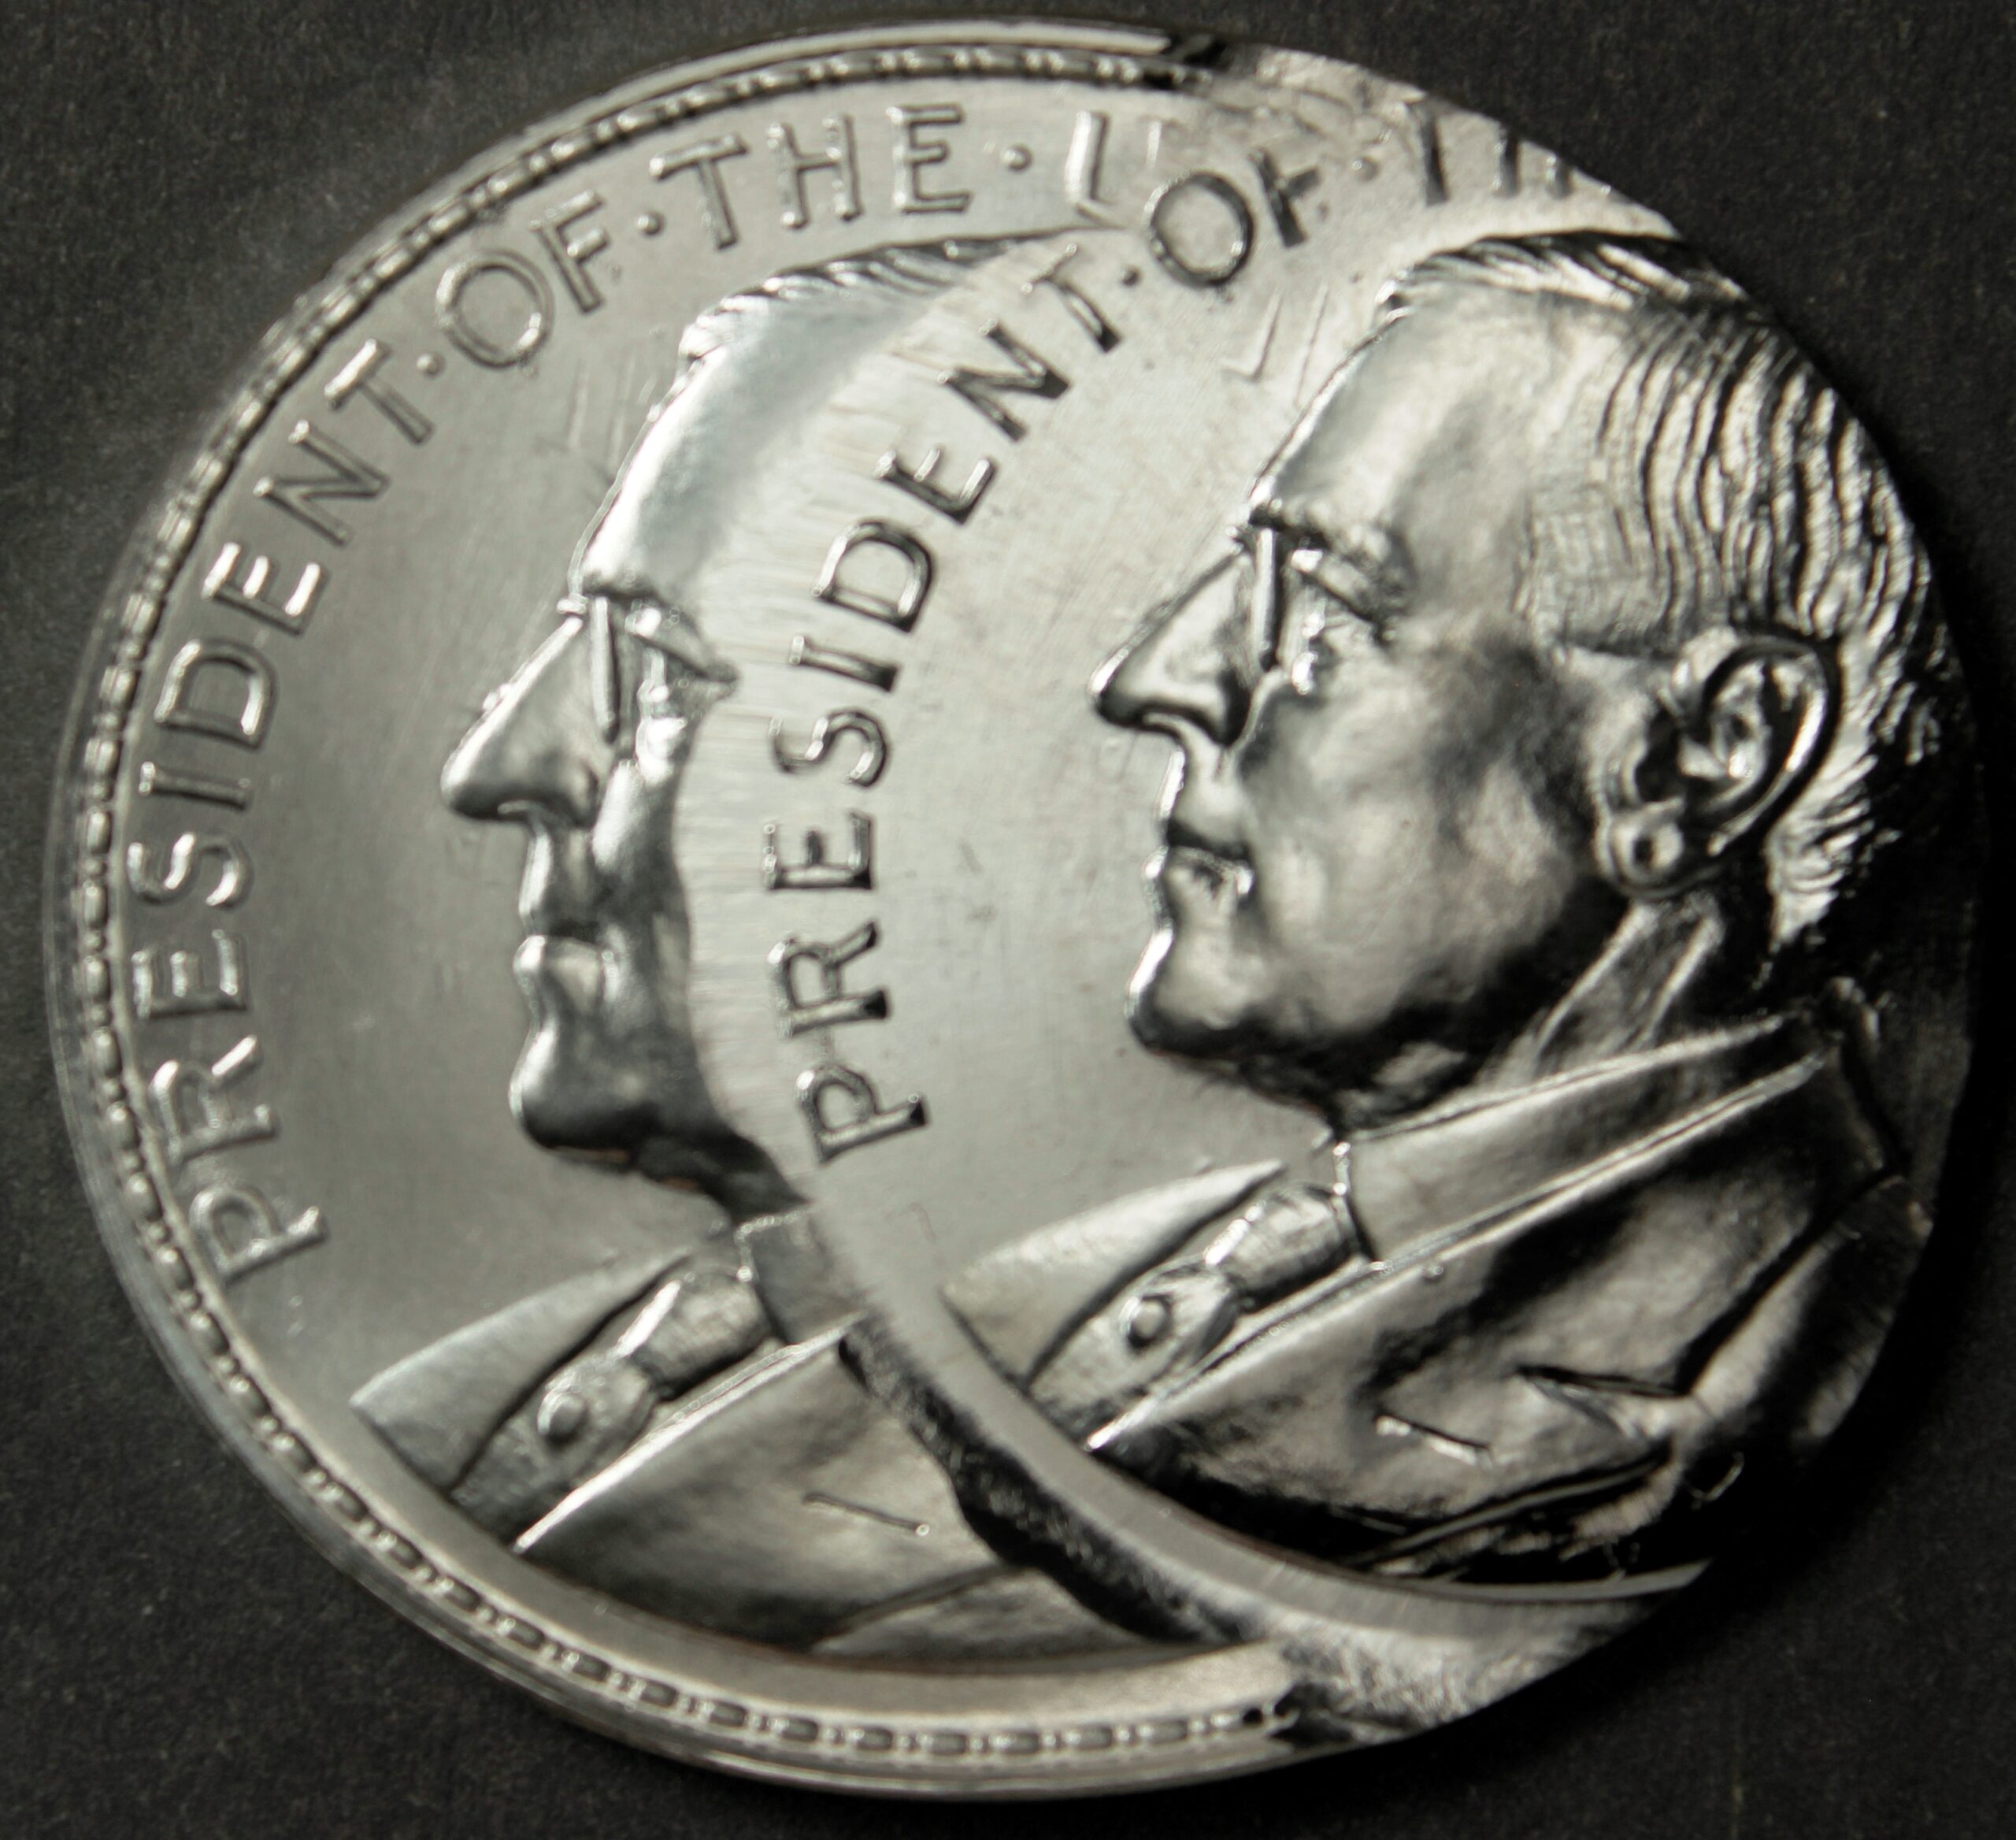 2020 Wilson Dollar Error – Silver Double Struck Off-Center